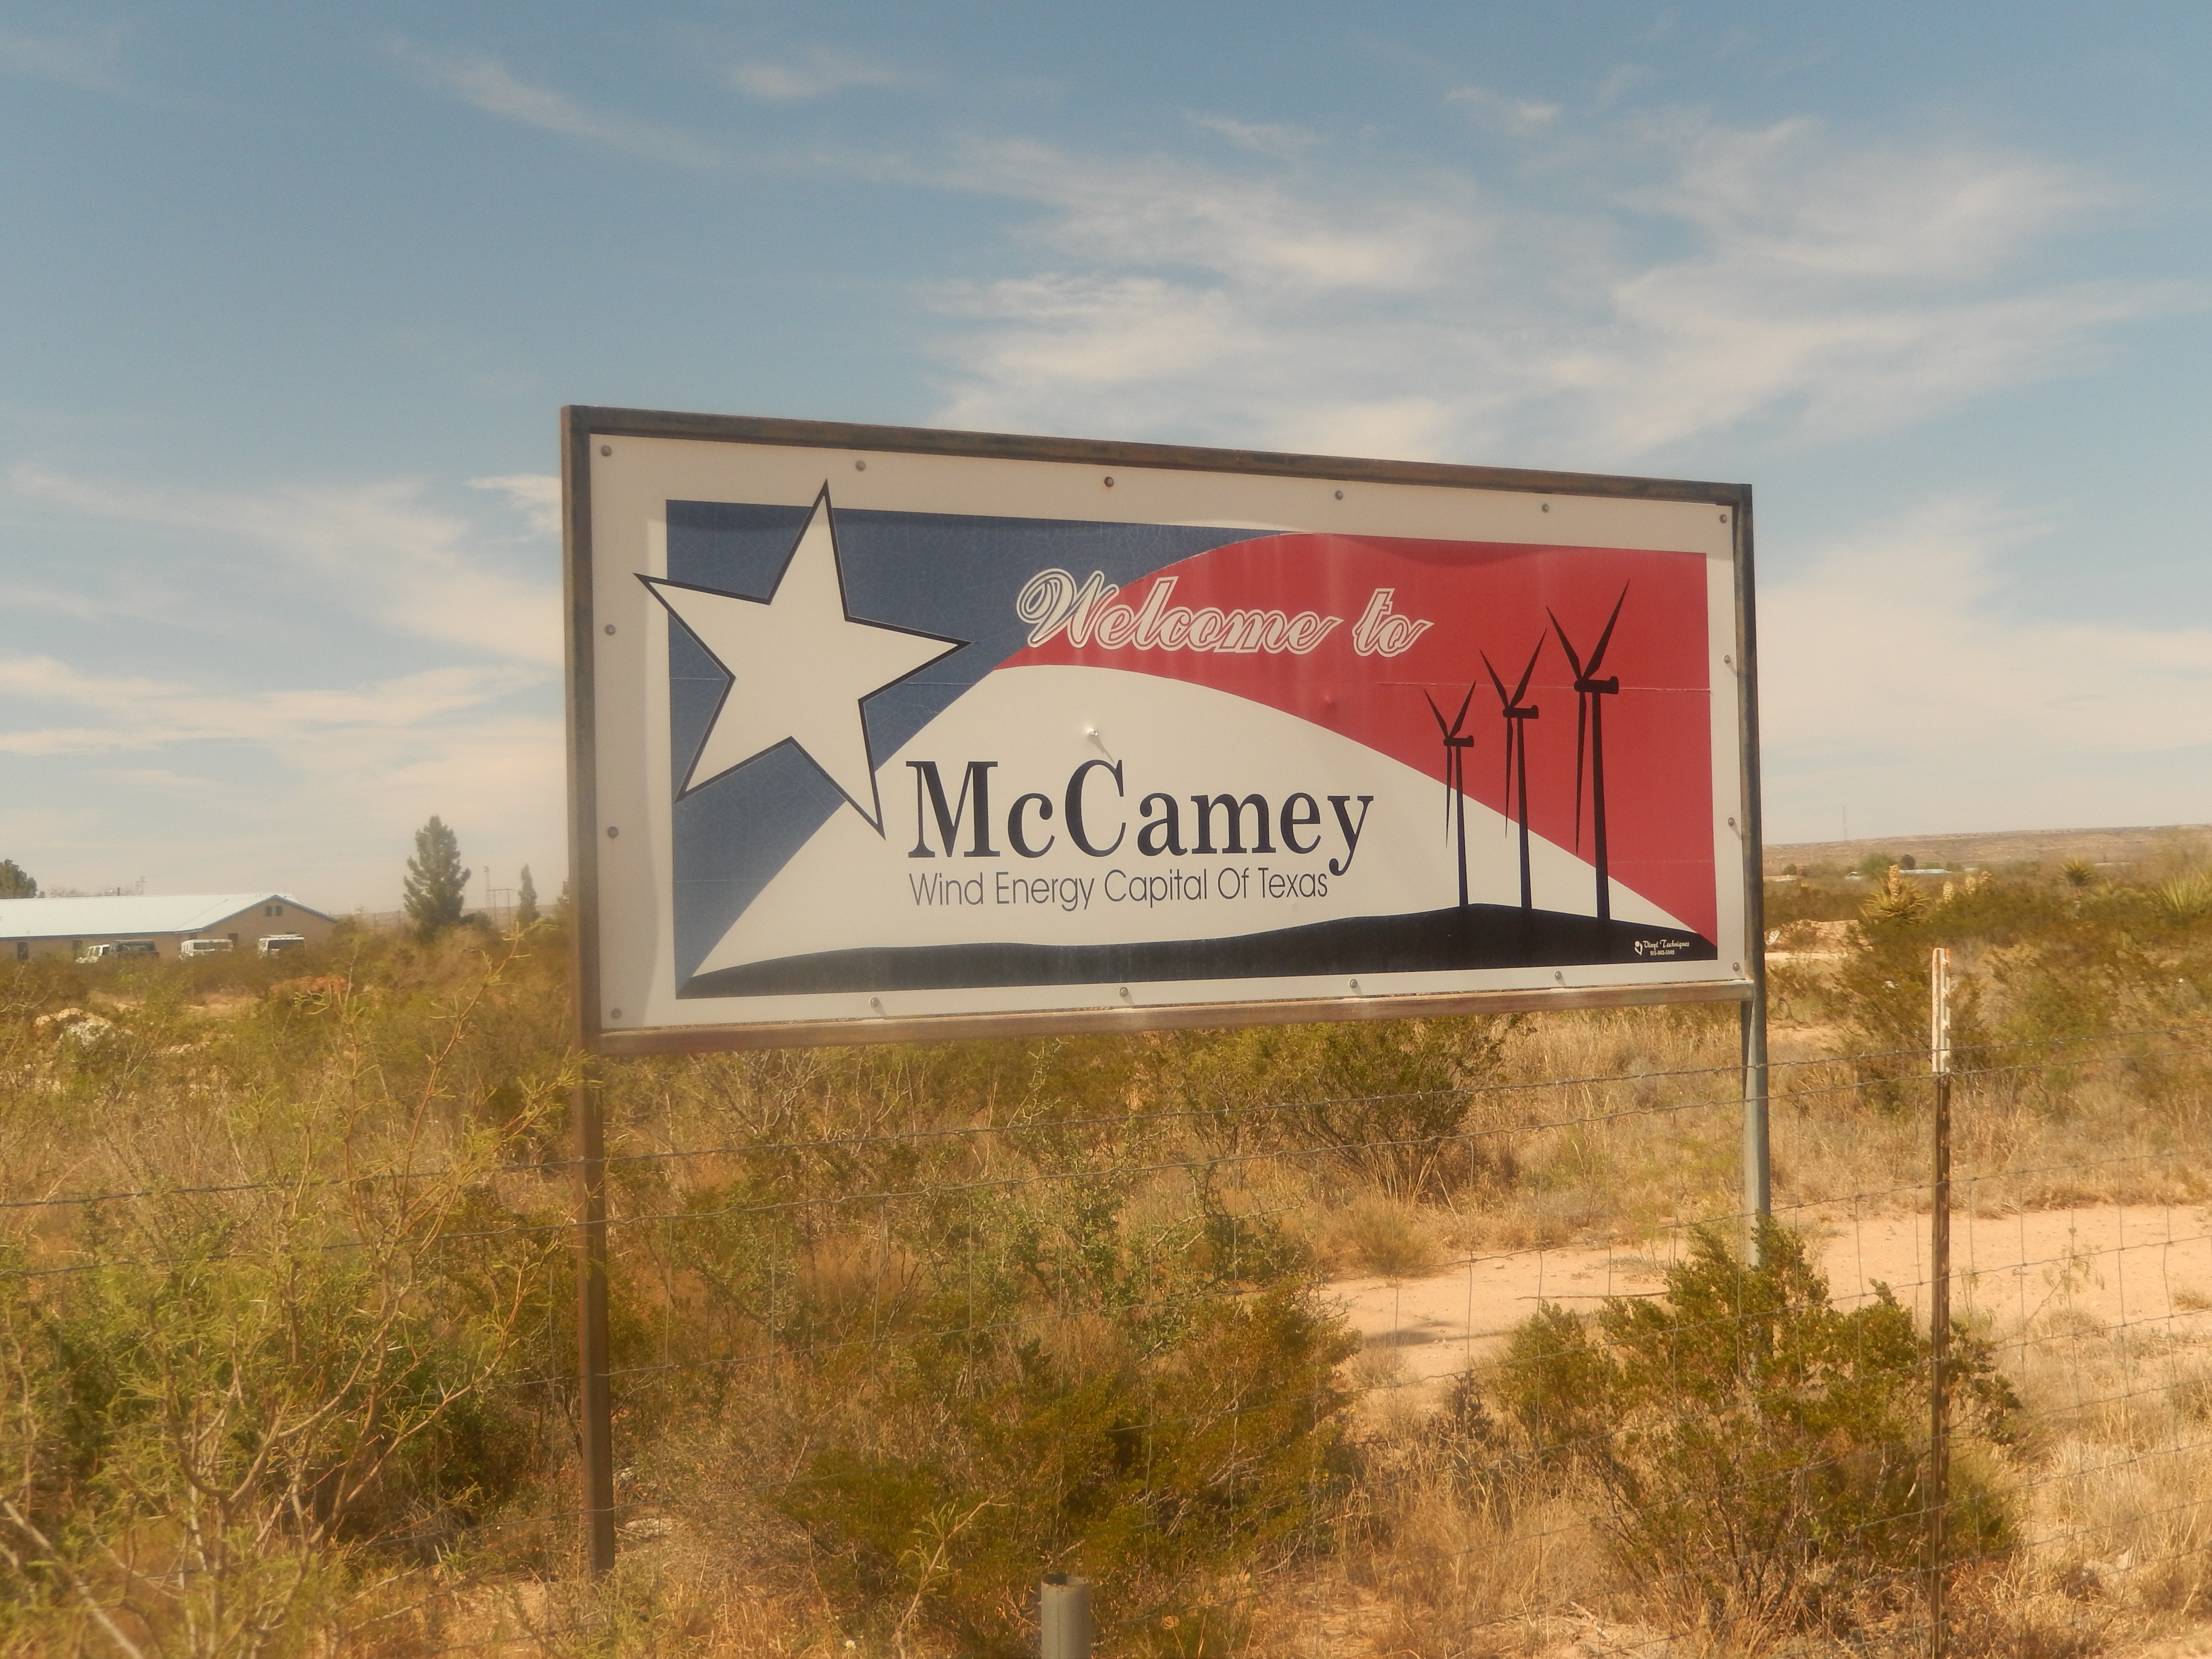 Dating in mccamey tx